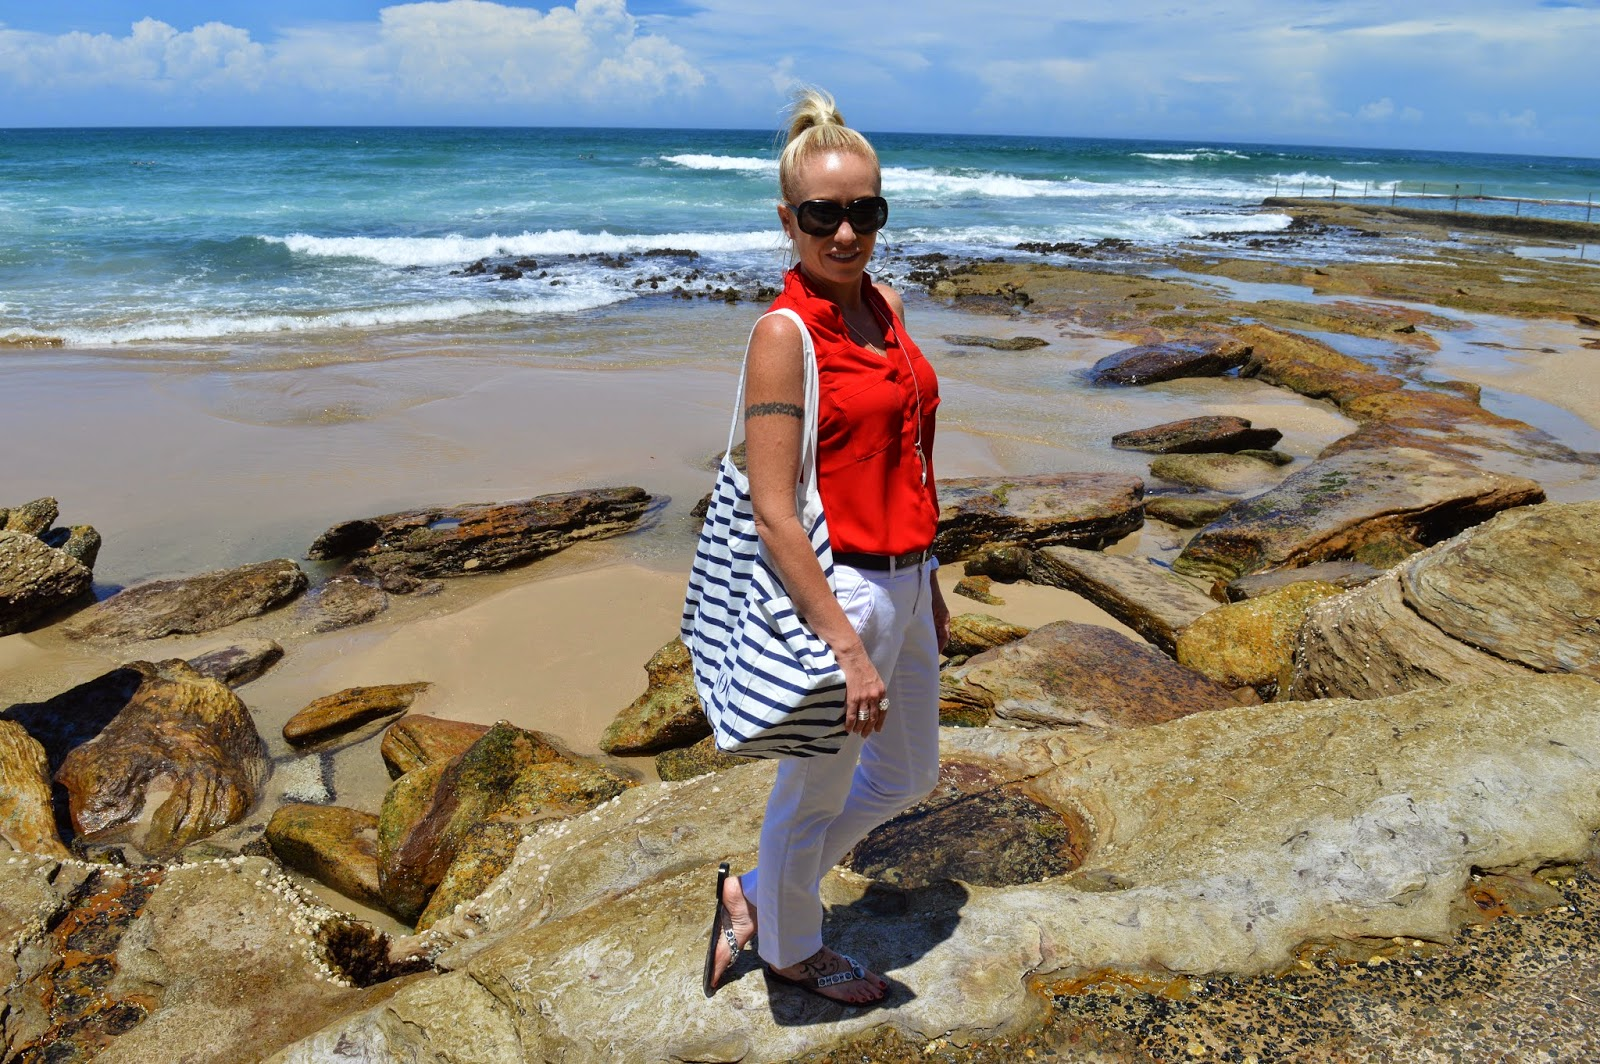 SFH in white pants and a red sleeveless top at Cronulla beach.